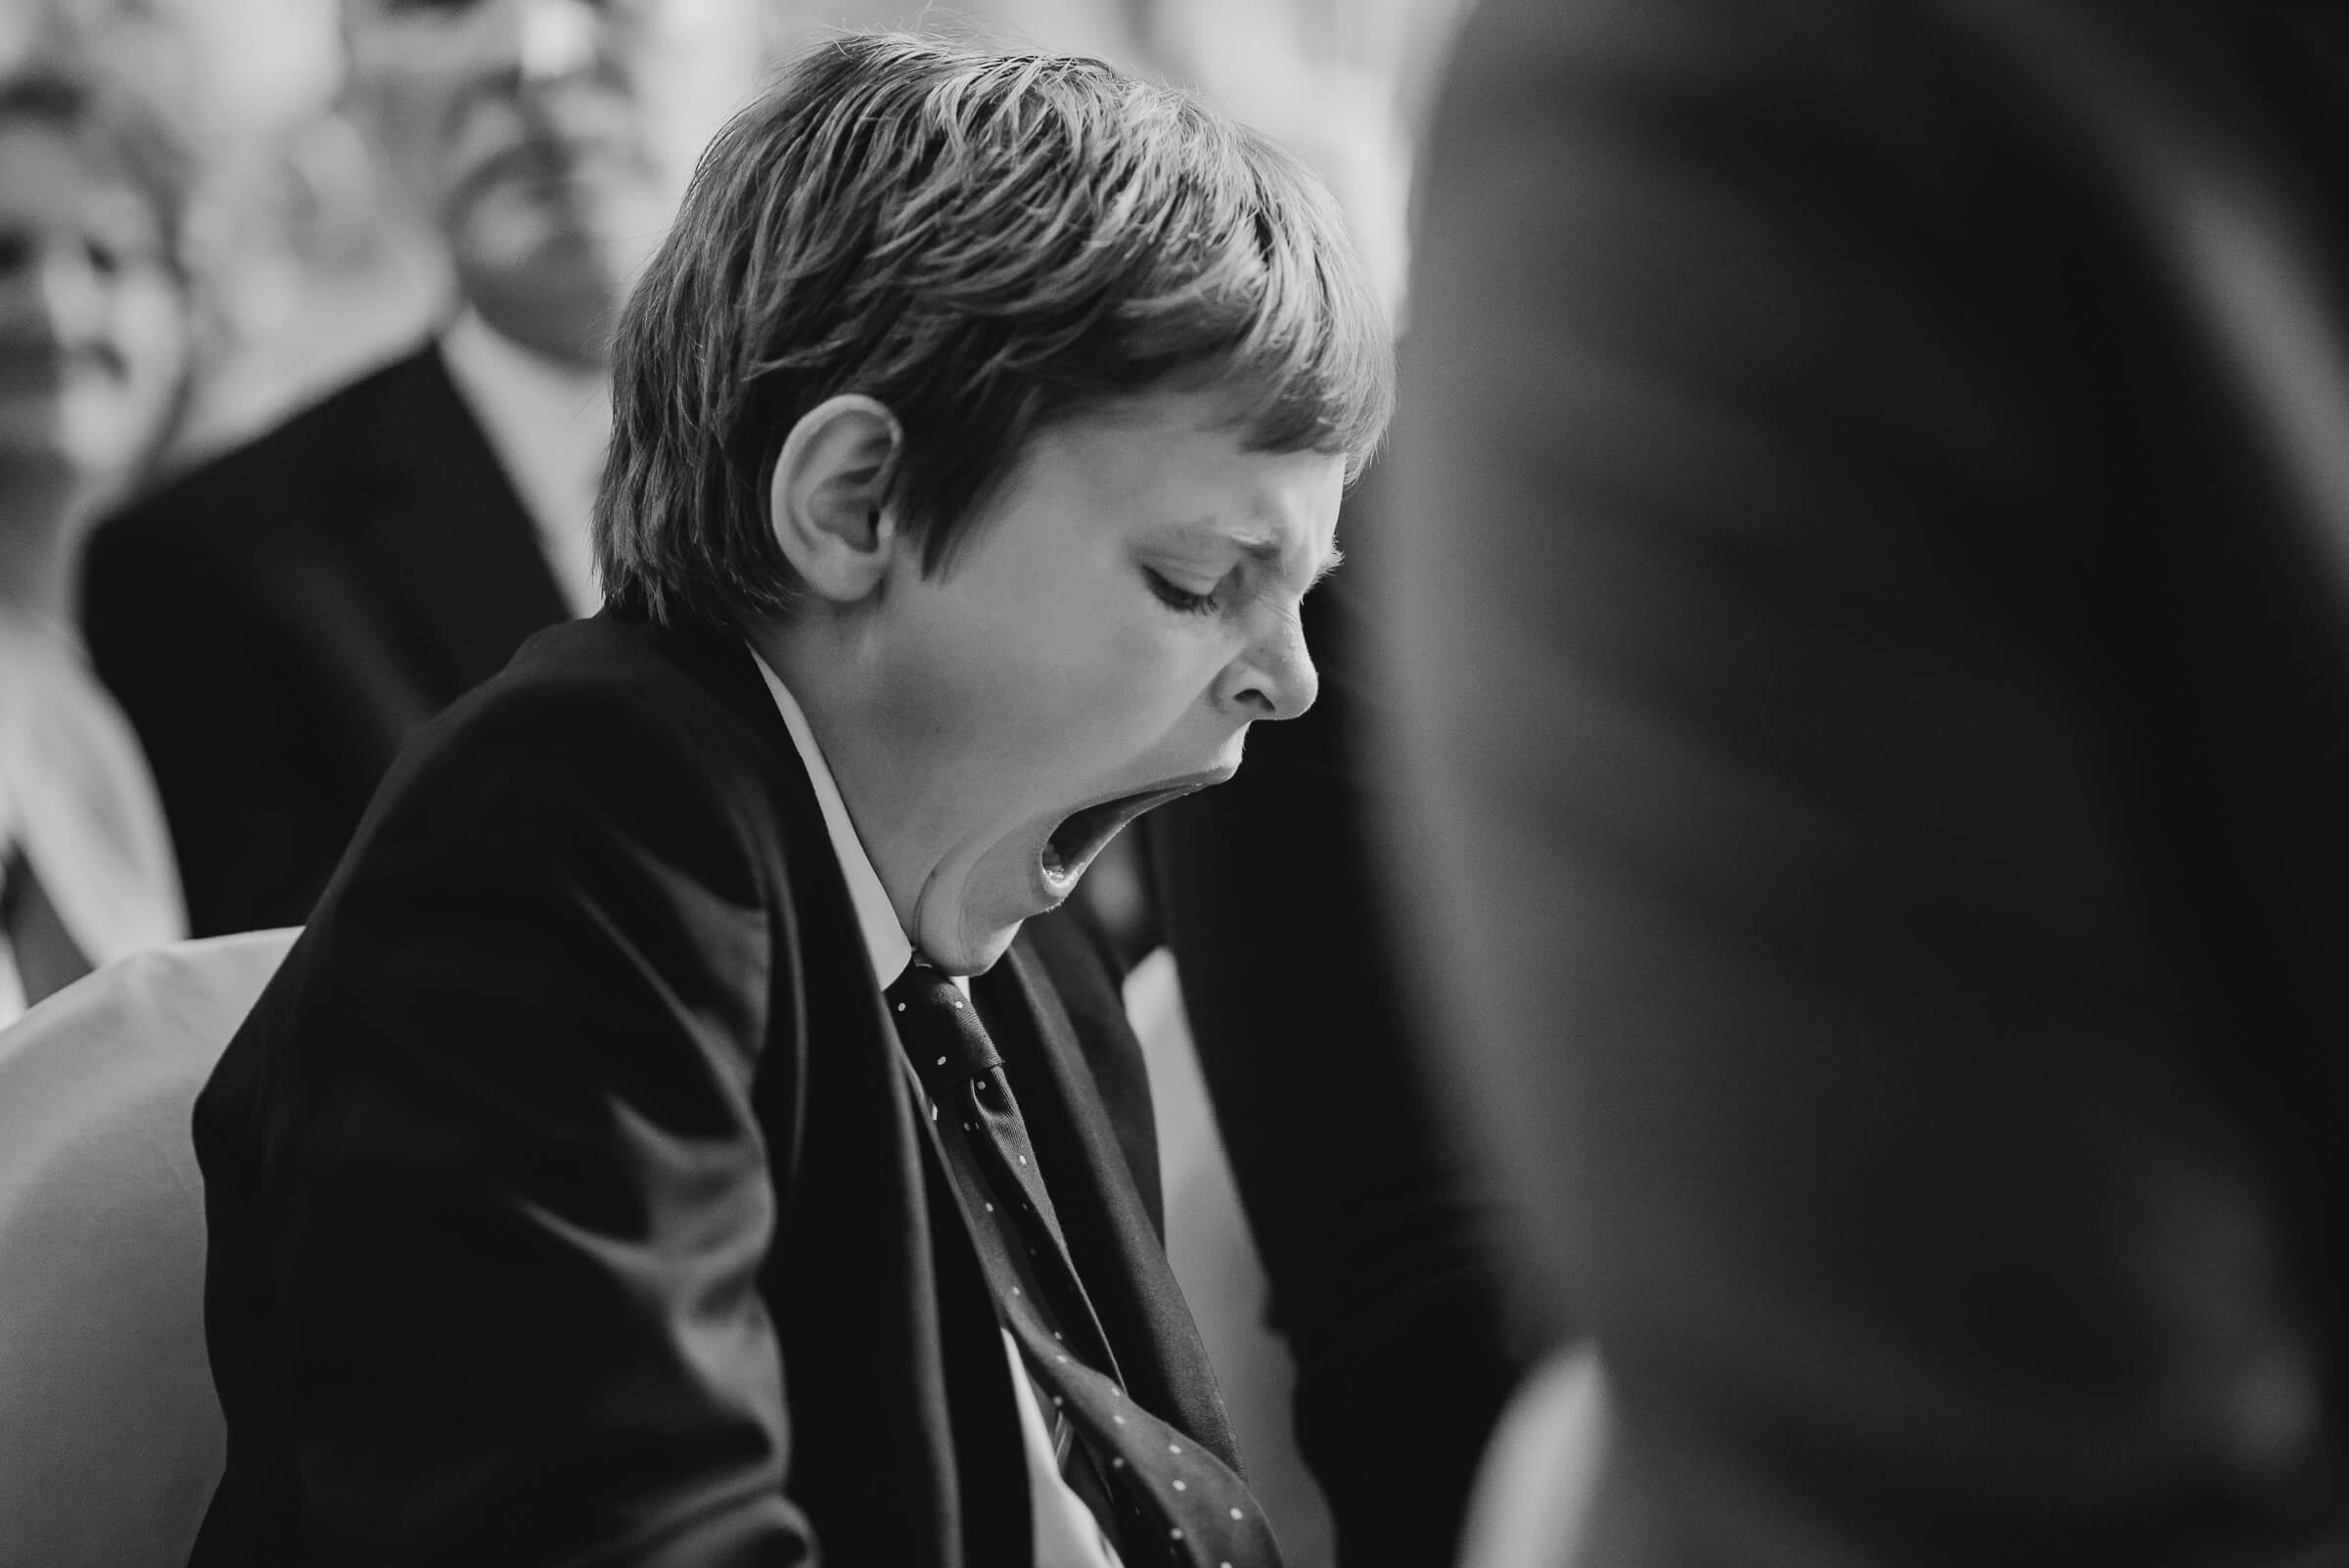 young boy yawning during ceremony